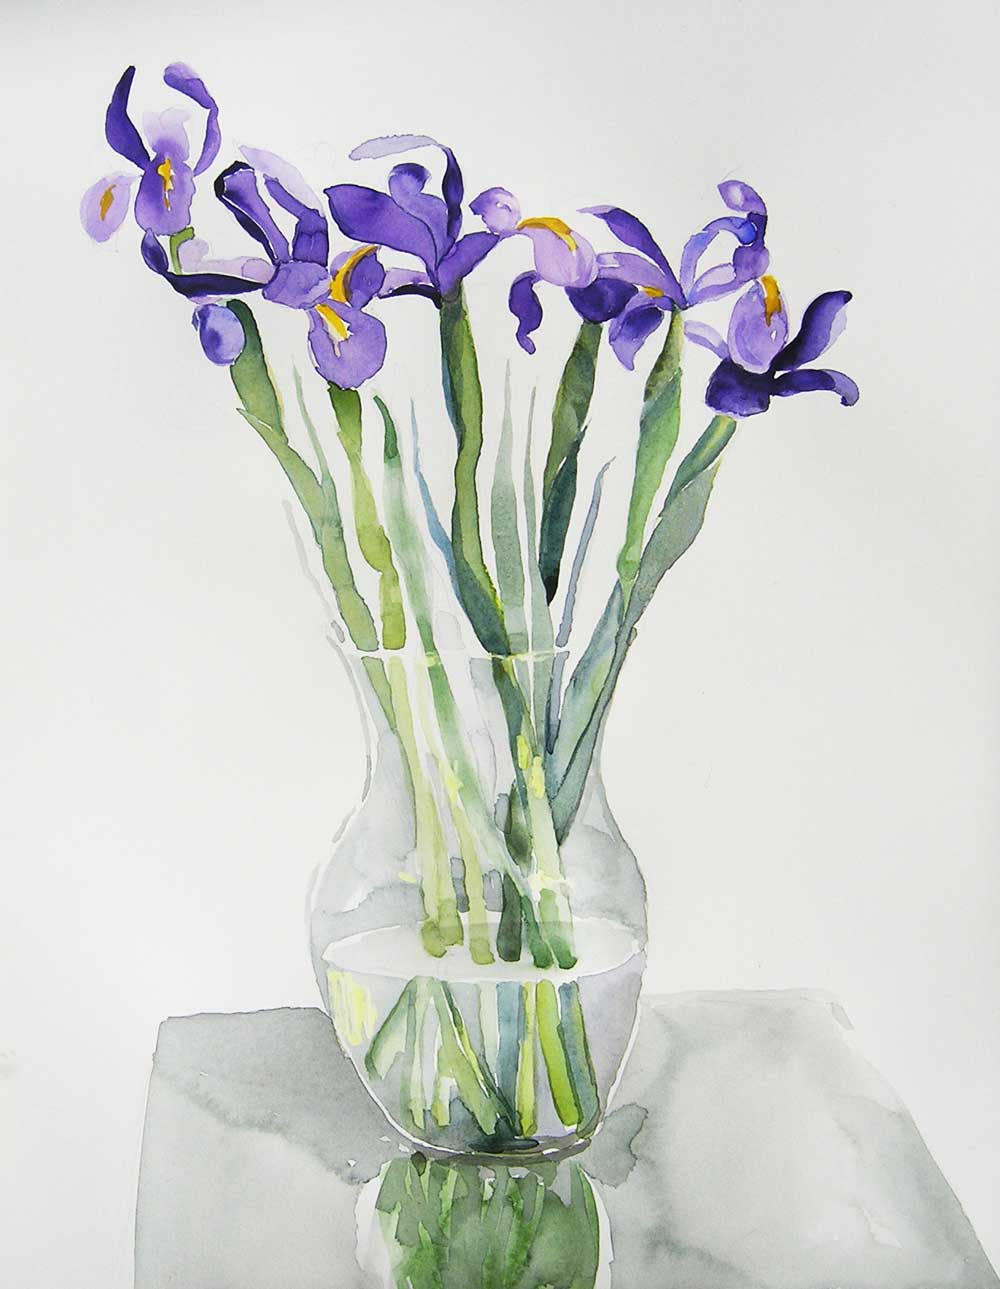 Iris on white: Watercolor on Arches 140# hp, 12 x 16 in / 31 x 41 cm